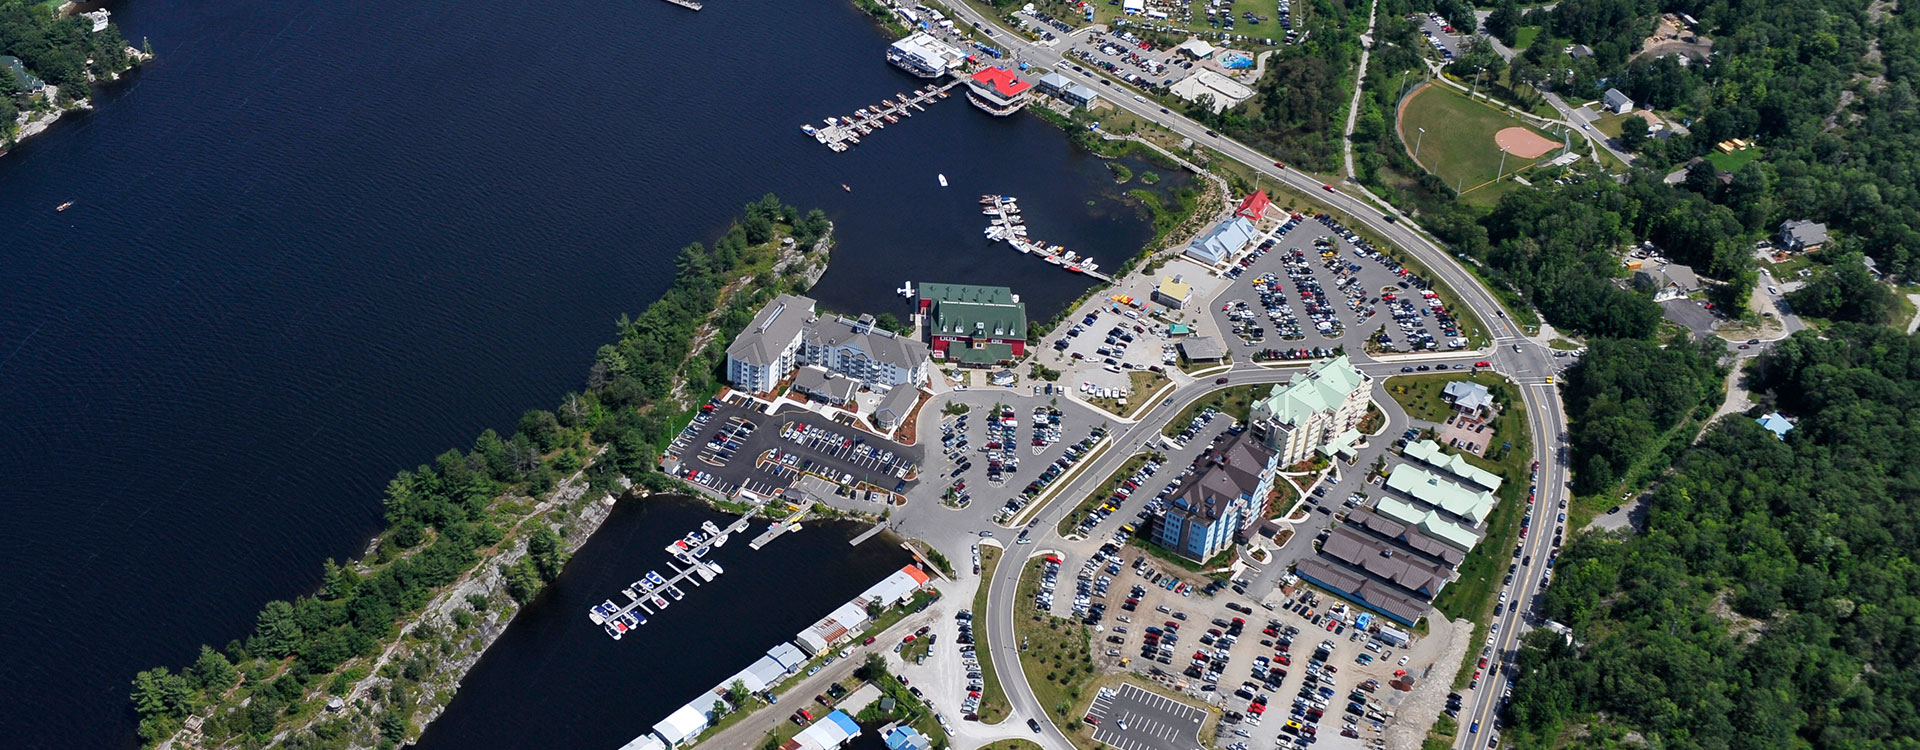 Aerial view Town of Gravenhurst, Town Hall Home Page